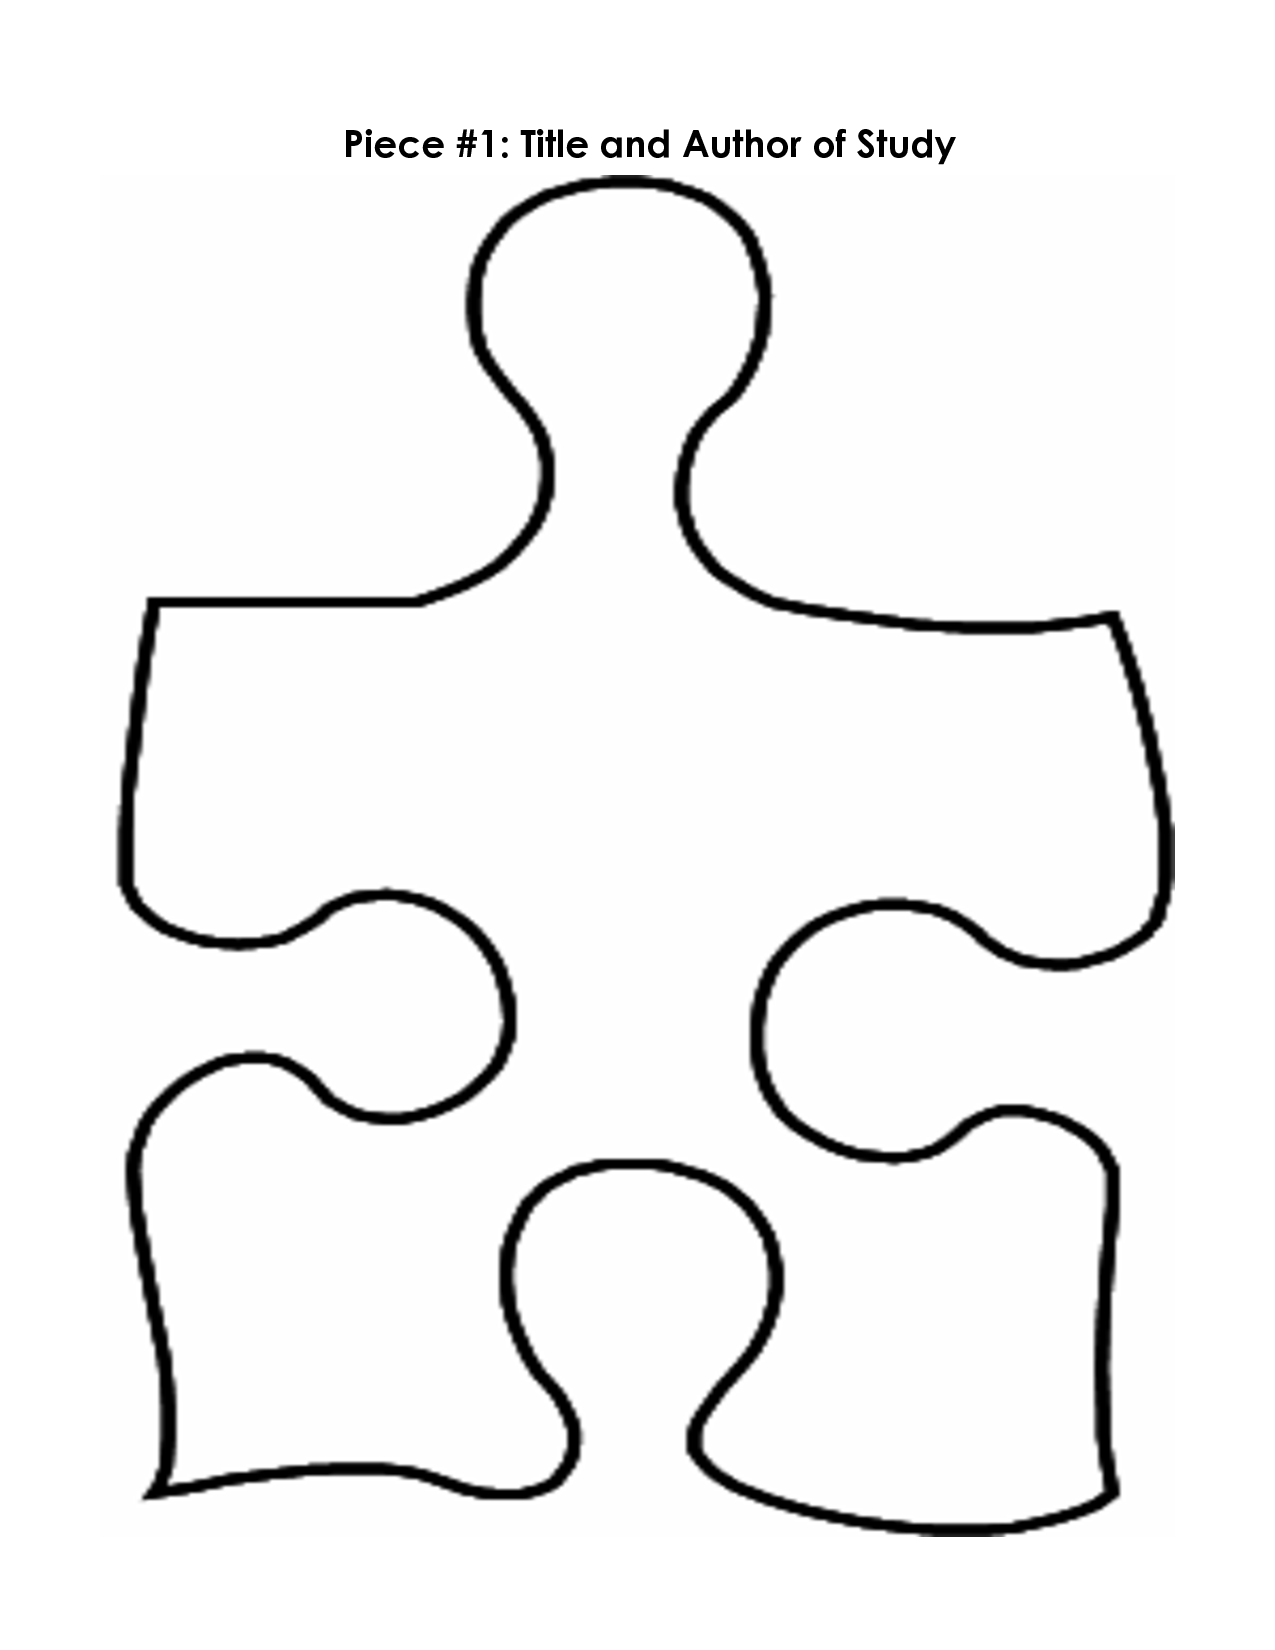 PNG Jigsaw Puzzle Pieces - 49012